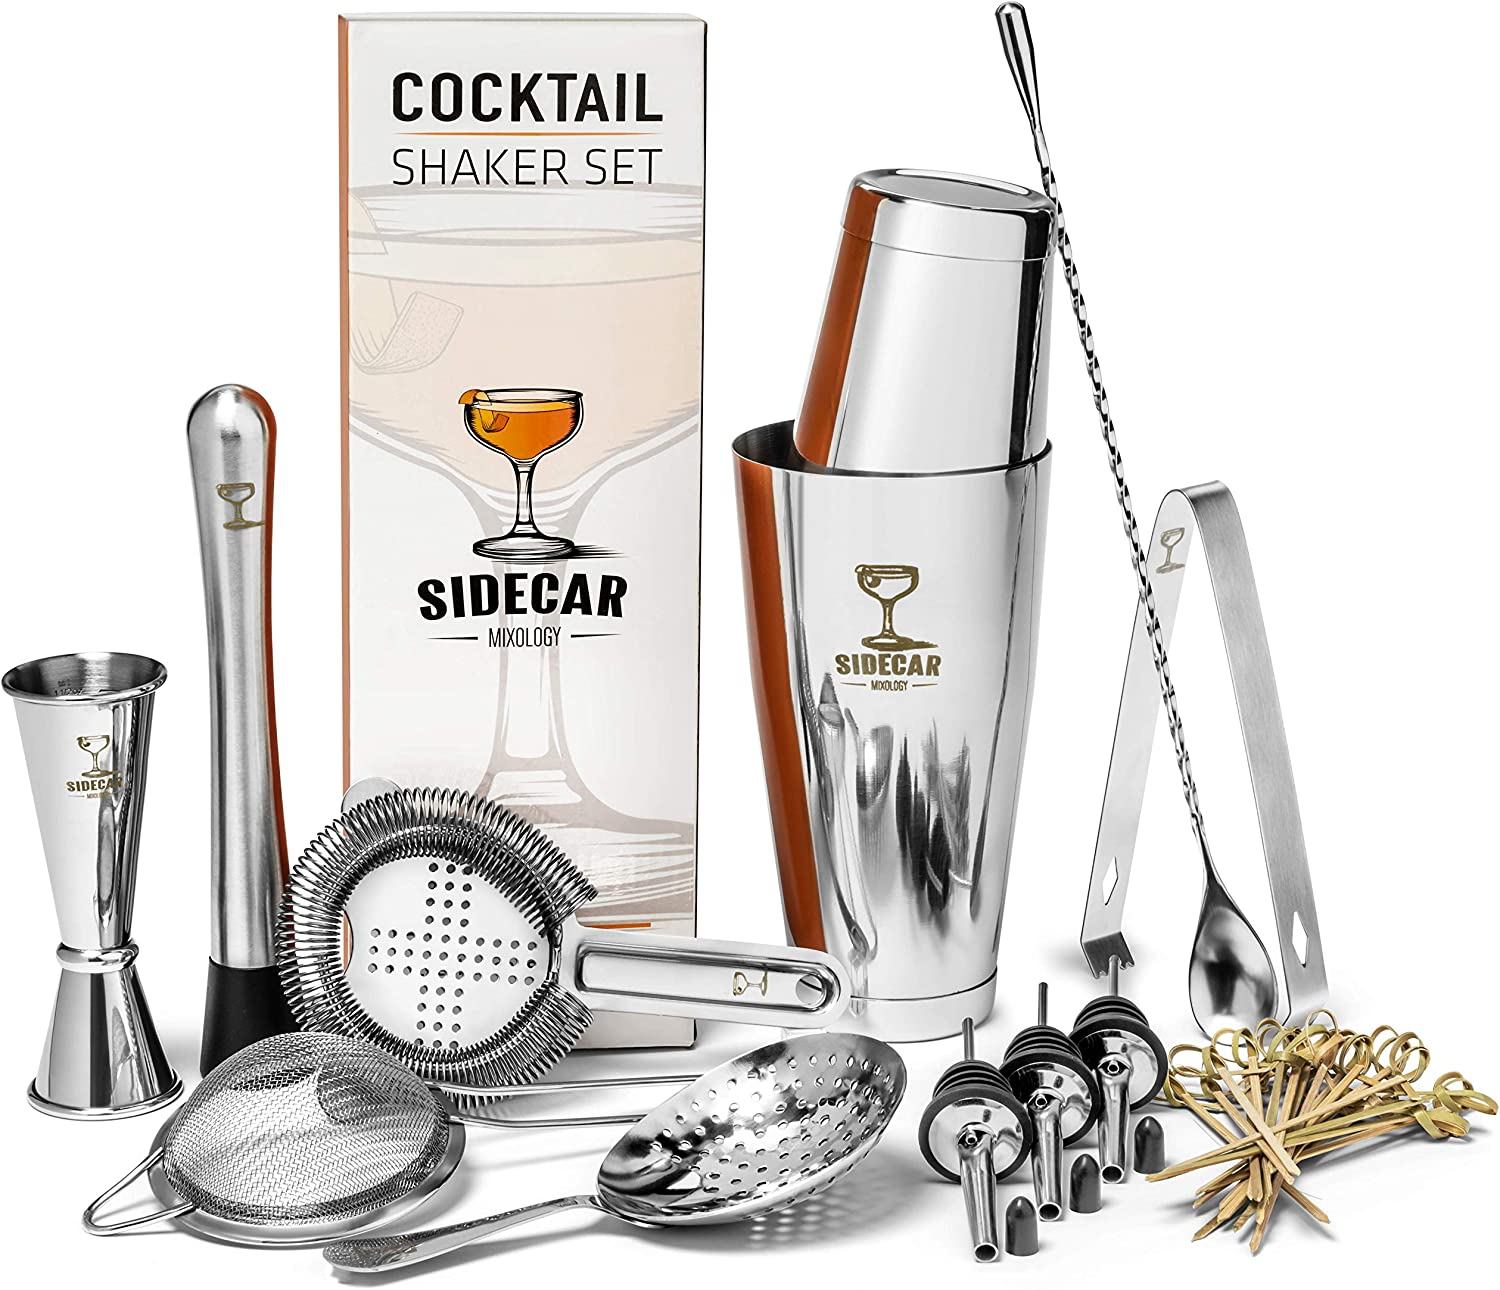 Cocktail Shaker Set by Sidecar Mixology  16 Piece Stainless Steel Mixology Bartending Kit for the Home Bar - Make Craft Cocktails by Hand with Premium Tools - Weighted Boston Shakers and Bamboo Picks